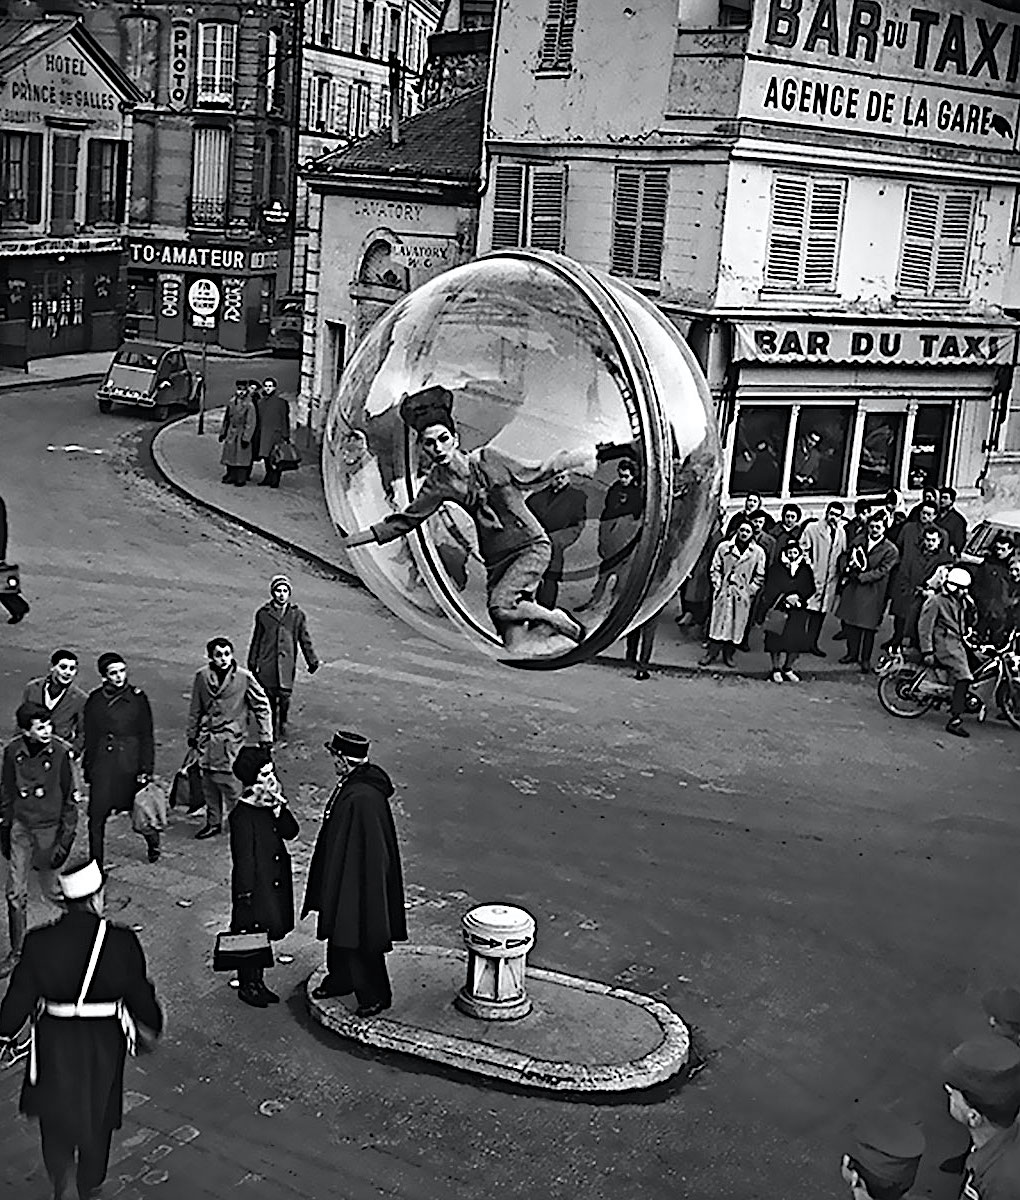 a 1963 Melvin Sokolosky fashion photo of a woman in a floating sphere